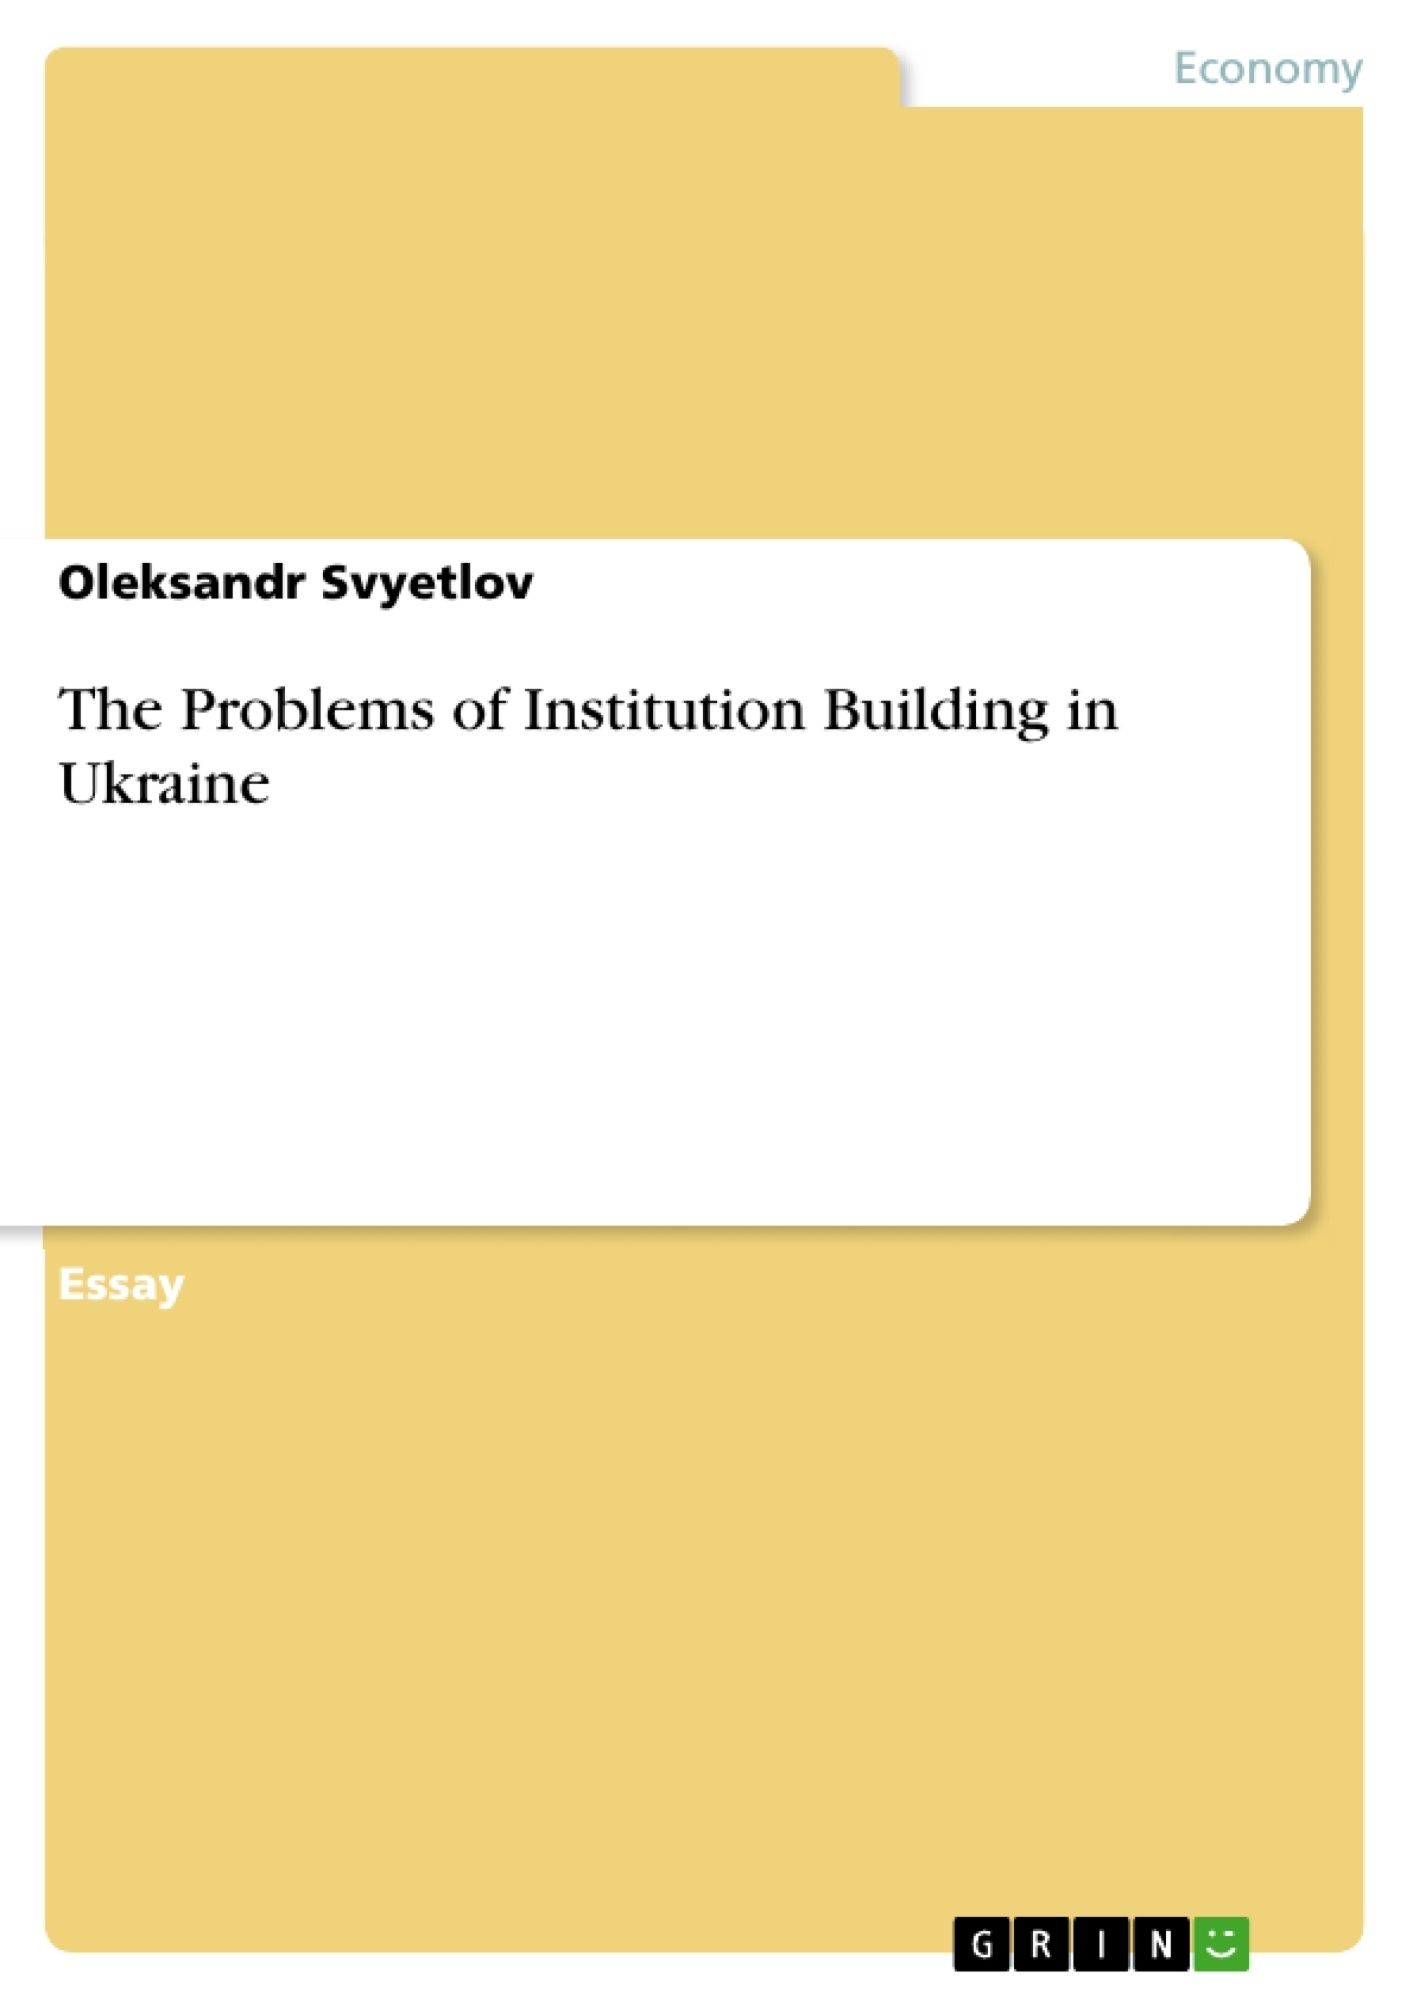 Title: The Problems of Institution Building in Ukraine